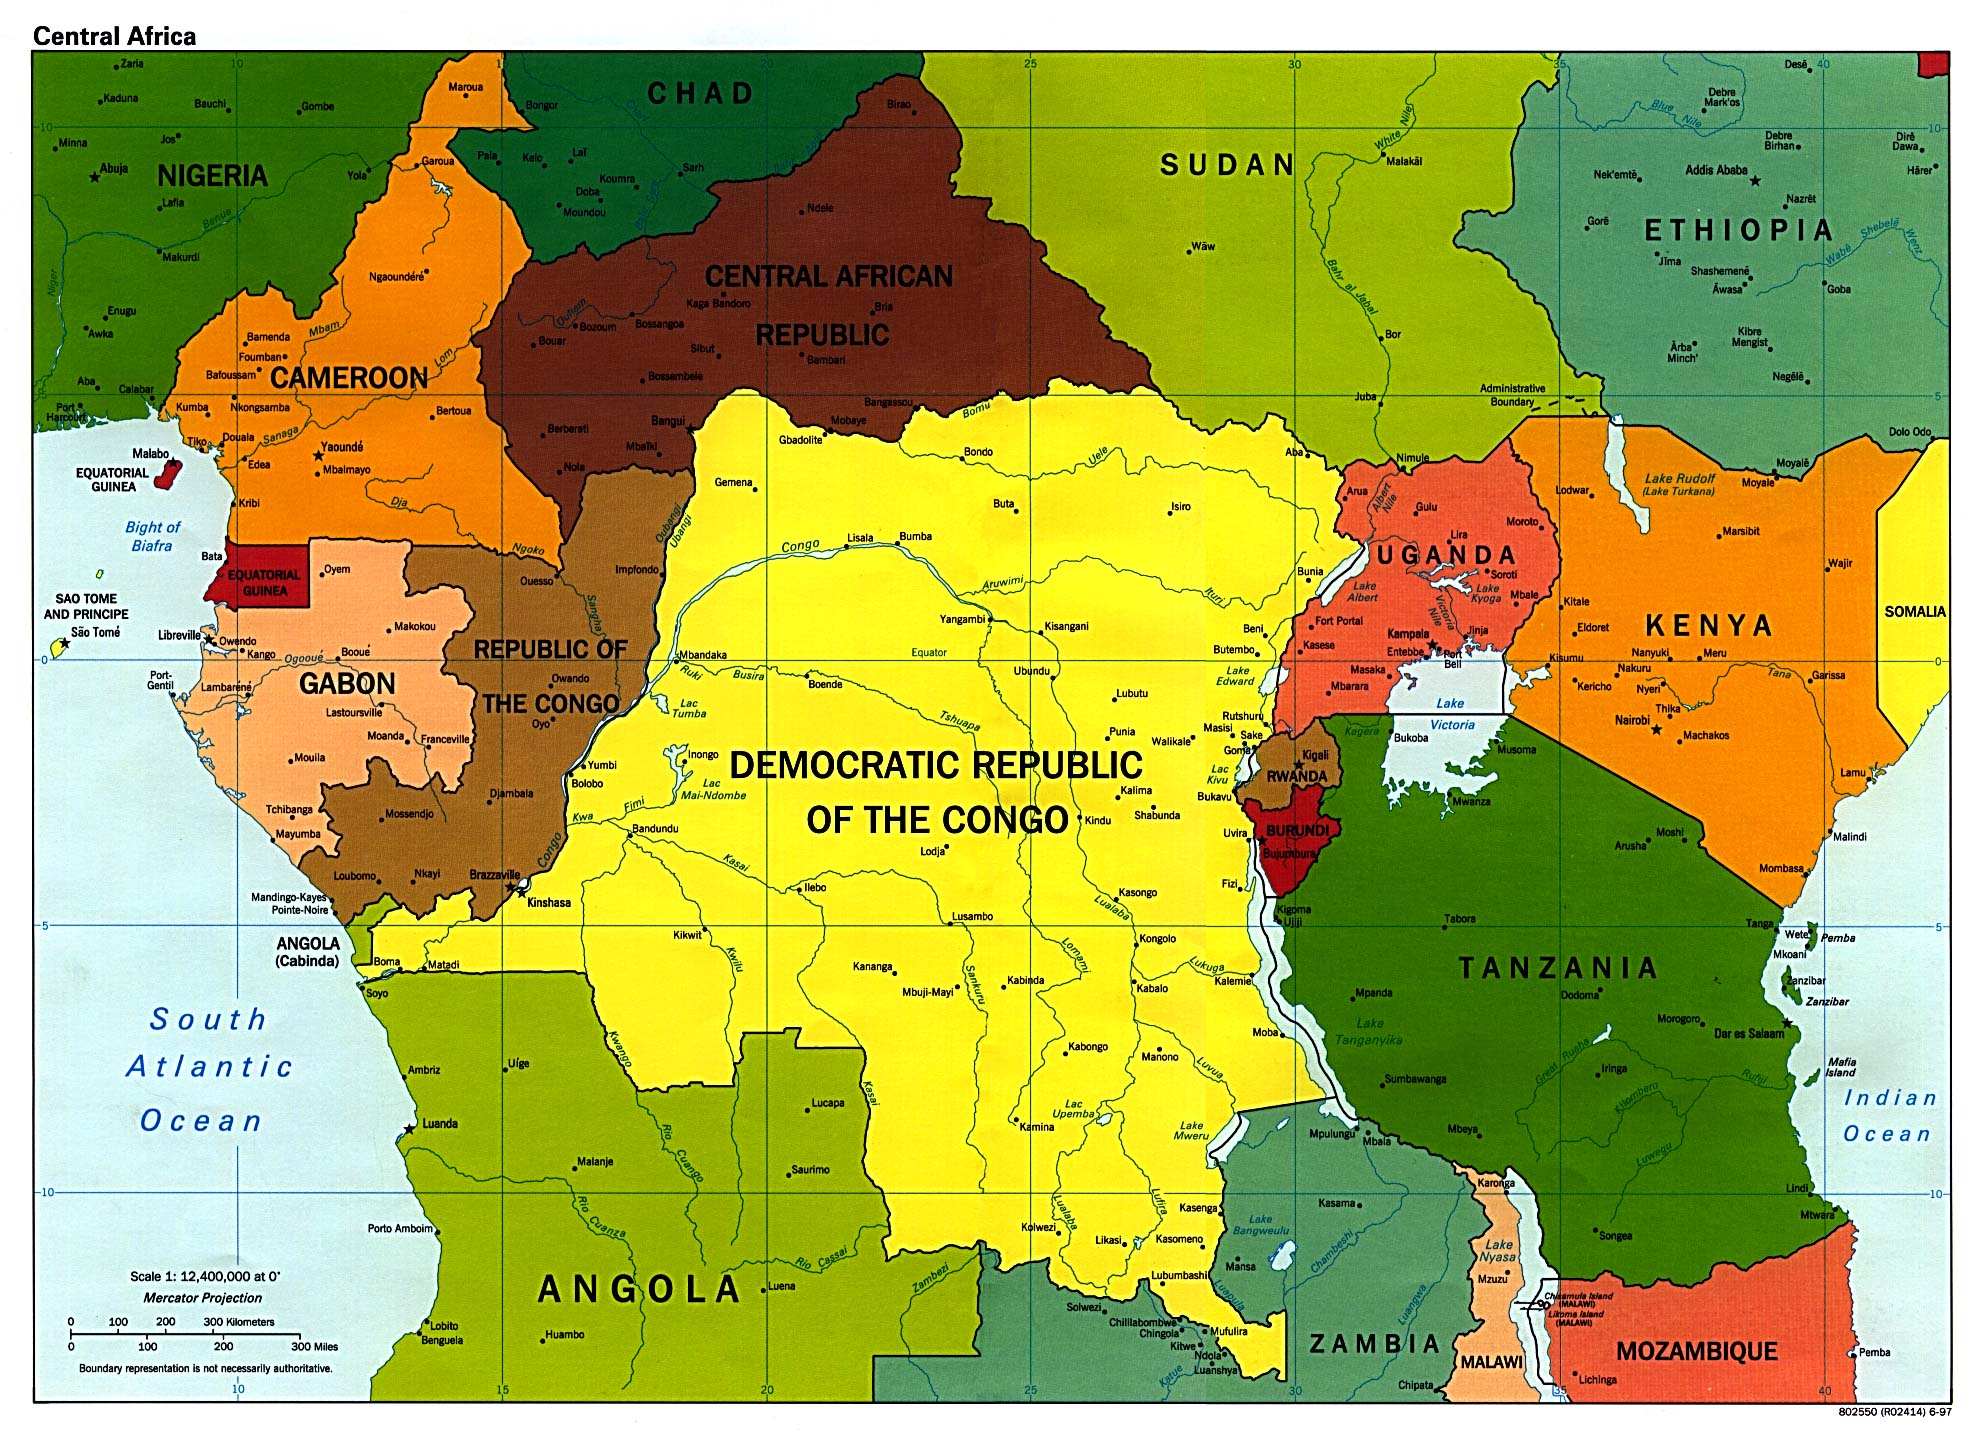 Gold and Ethnic Conflict in the Ituri Region